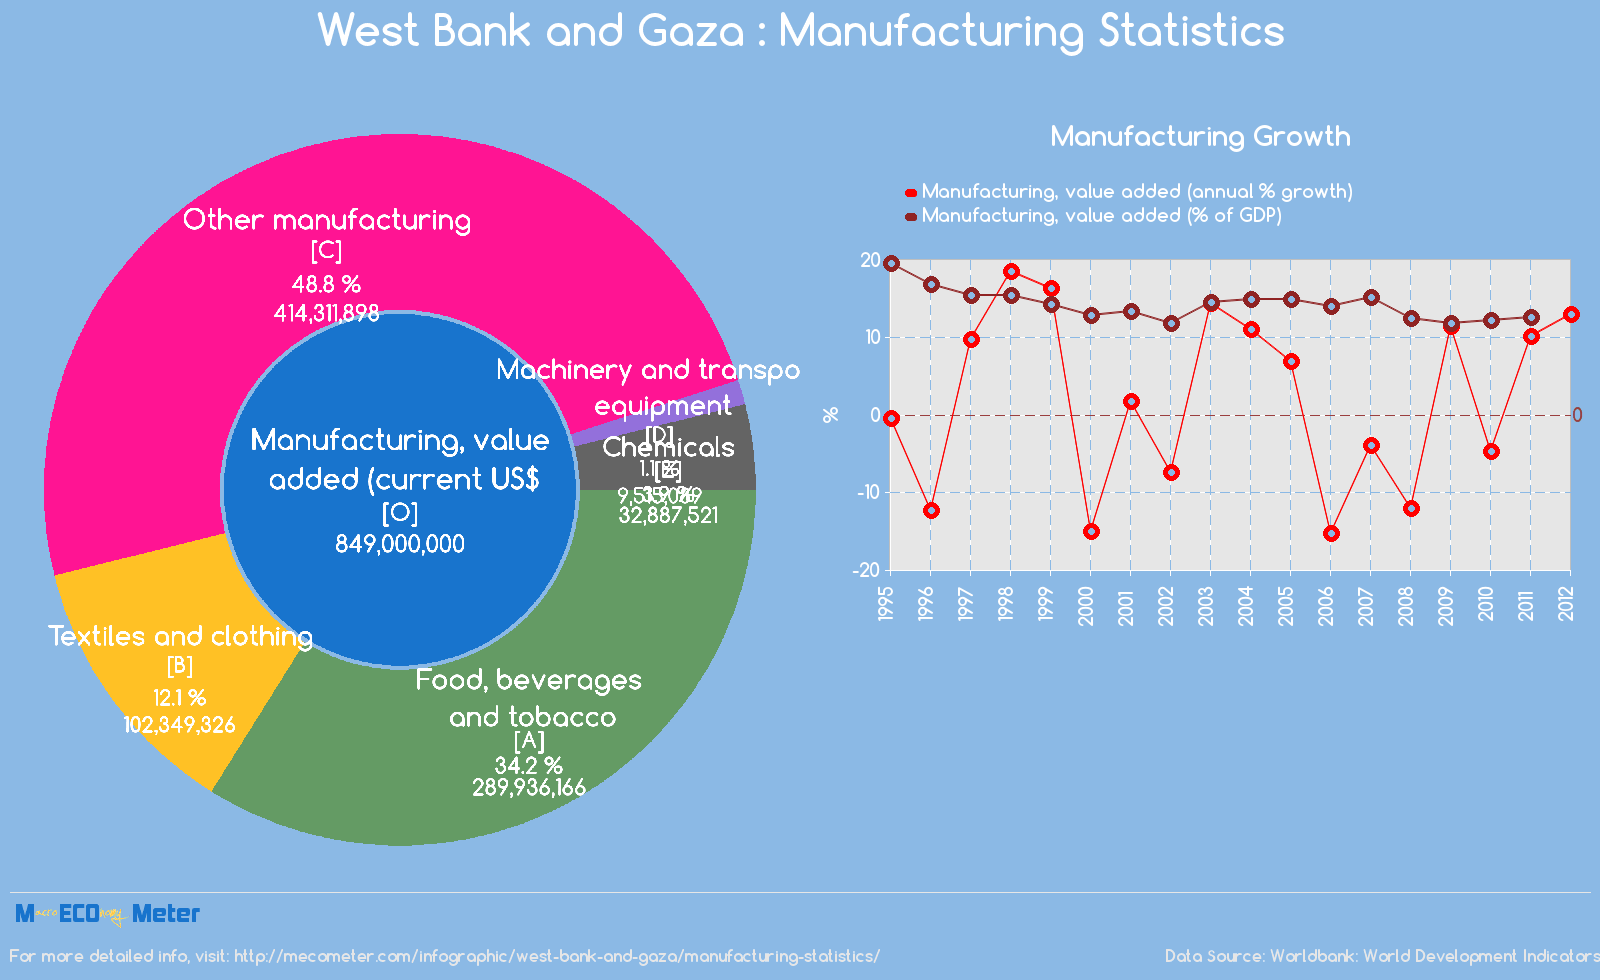 West Bank and Gaza : Manufacturing Statistics